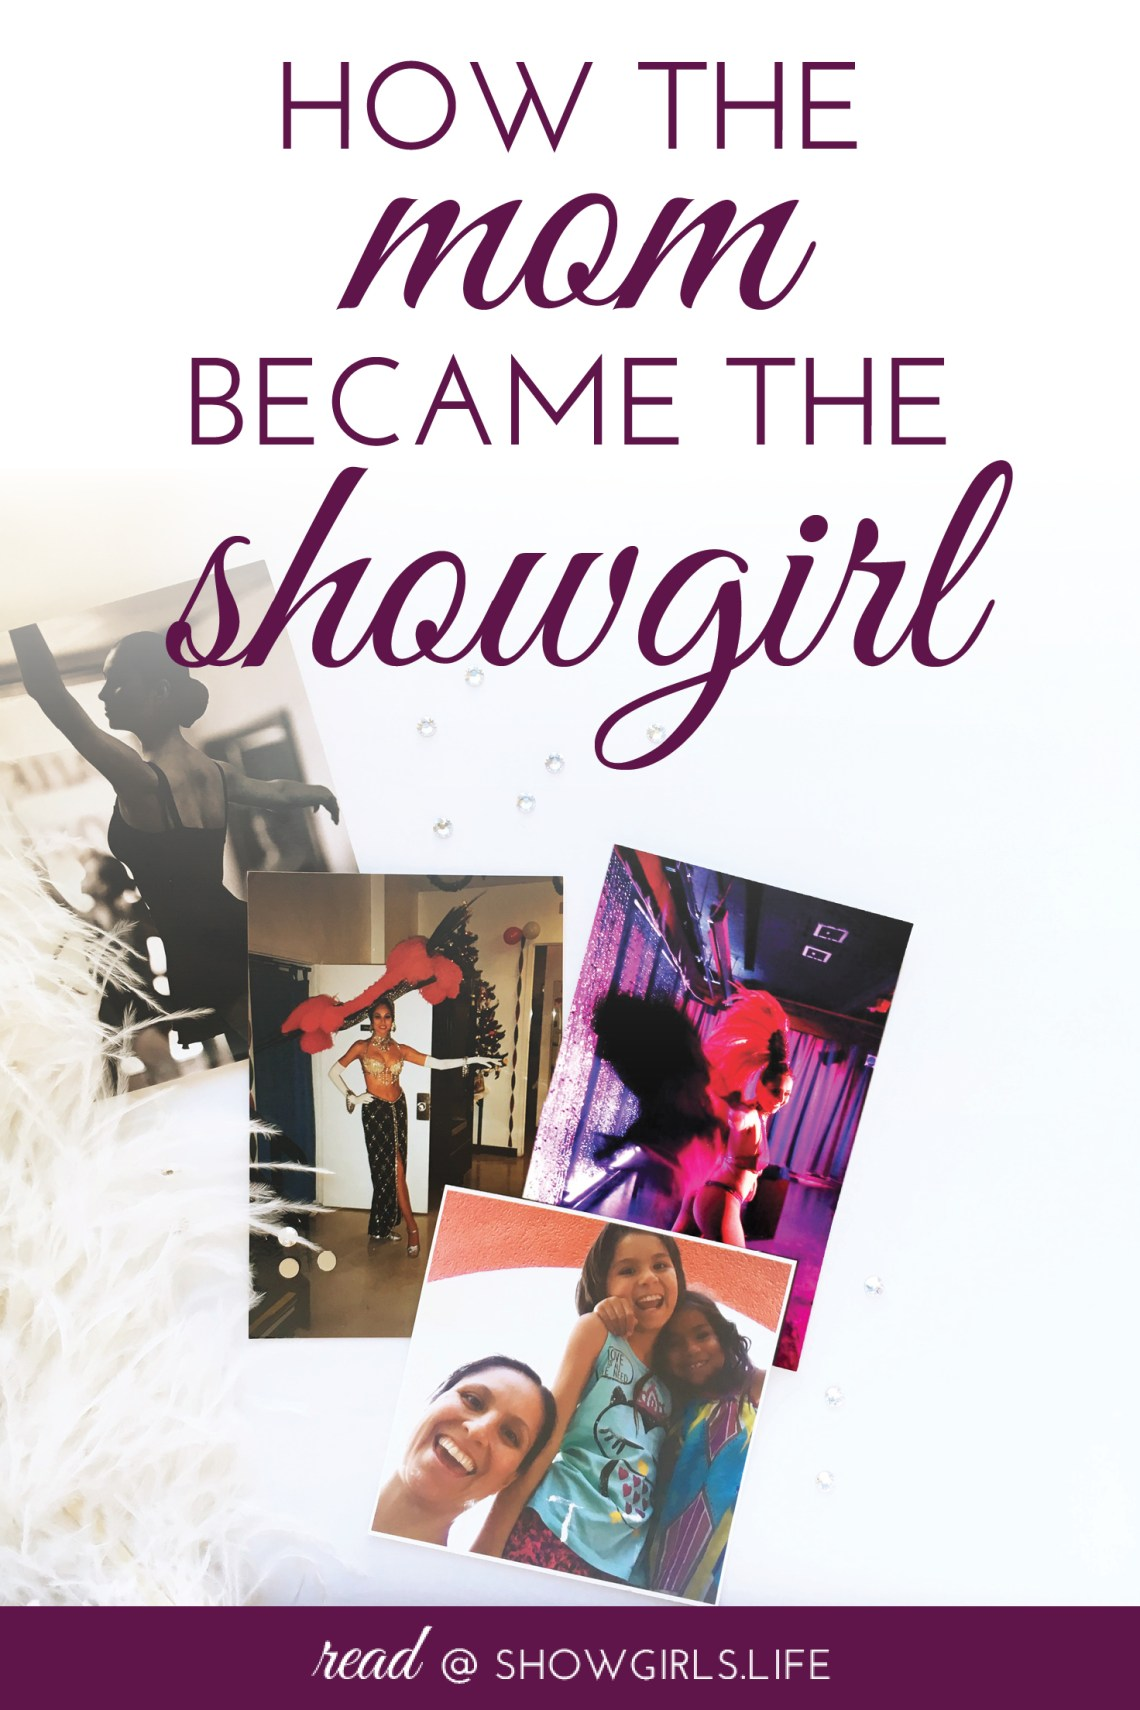 Showgirls.Life – How The Mom Became The Showgirl